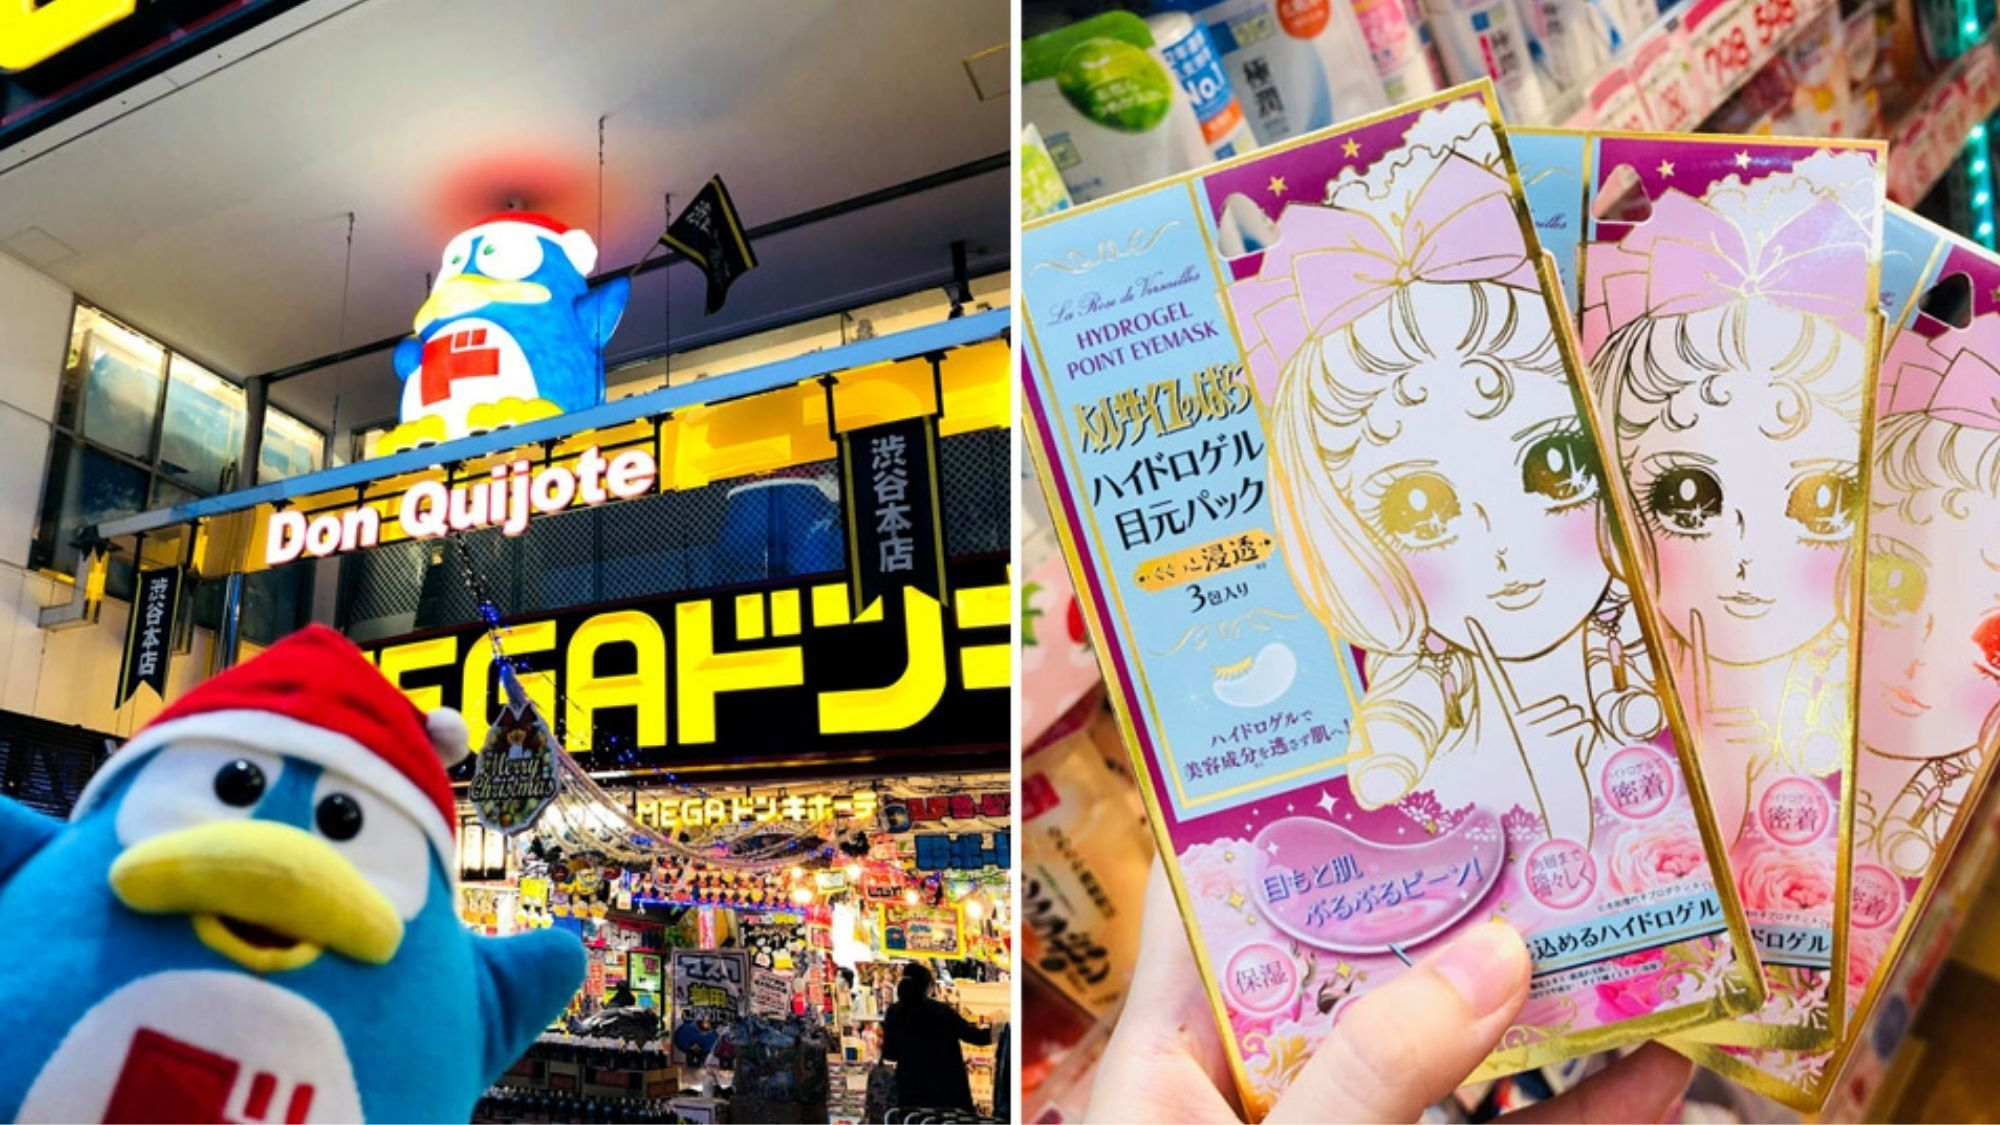 Local online shoppers can now order from Japanese store Don Quijote